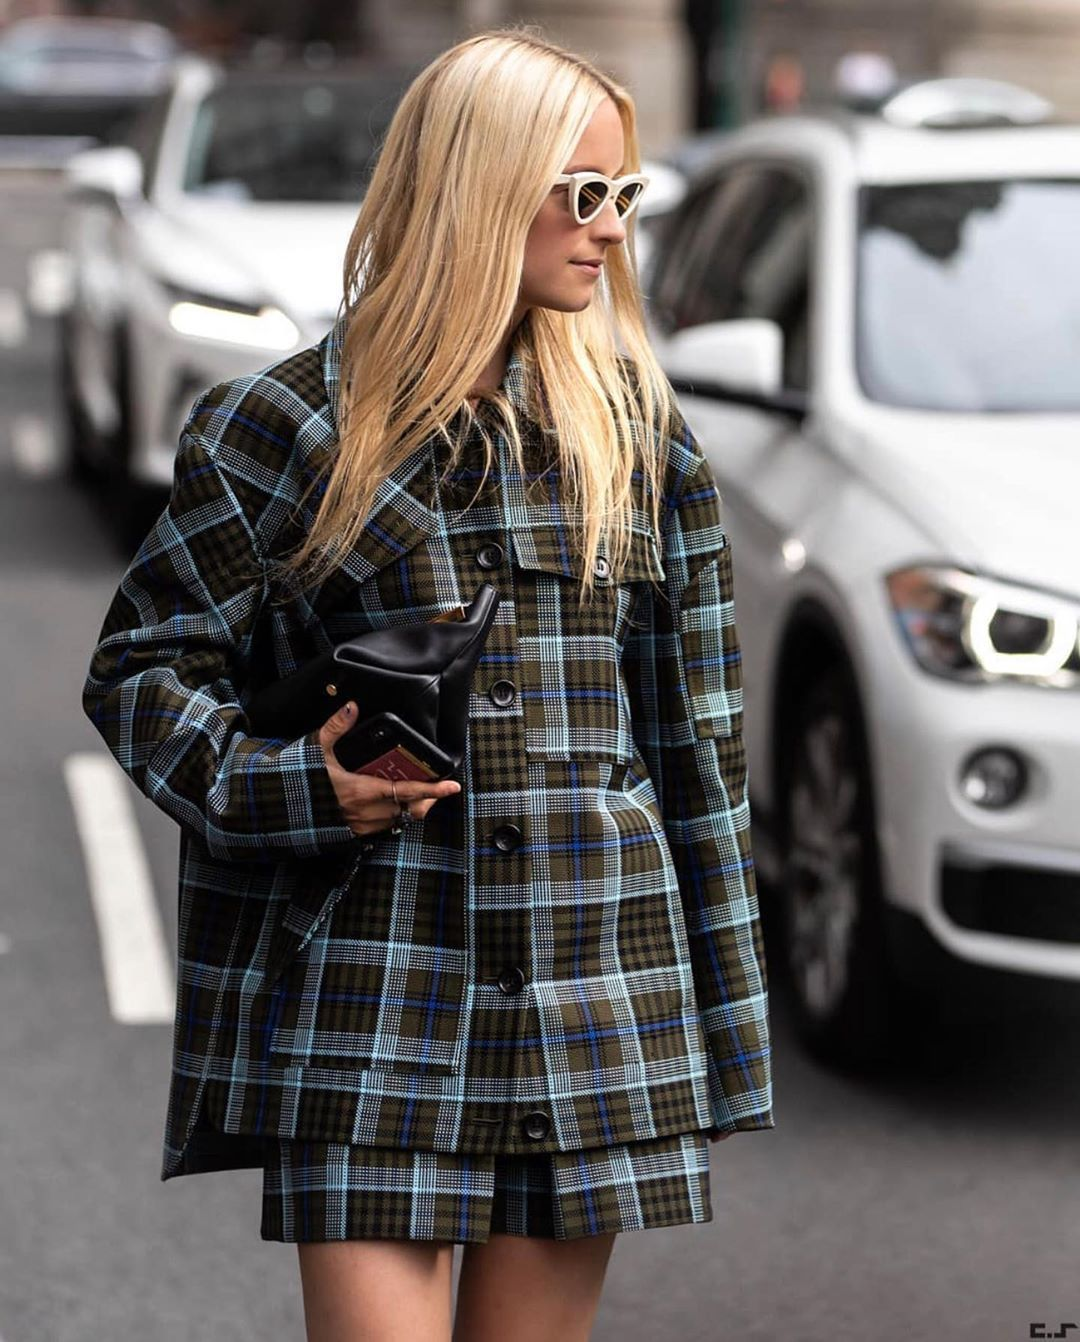 charlotte-groeneveld-tibi-plaid-workman-jacket-with-pocket-instagra